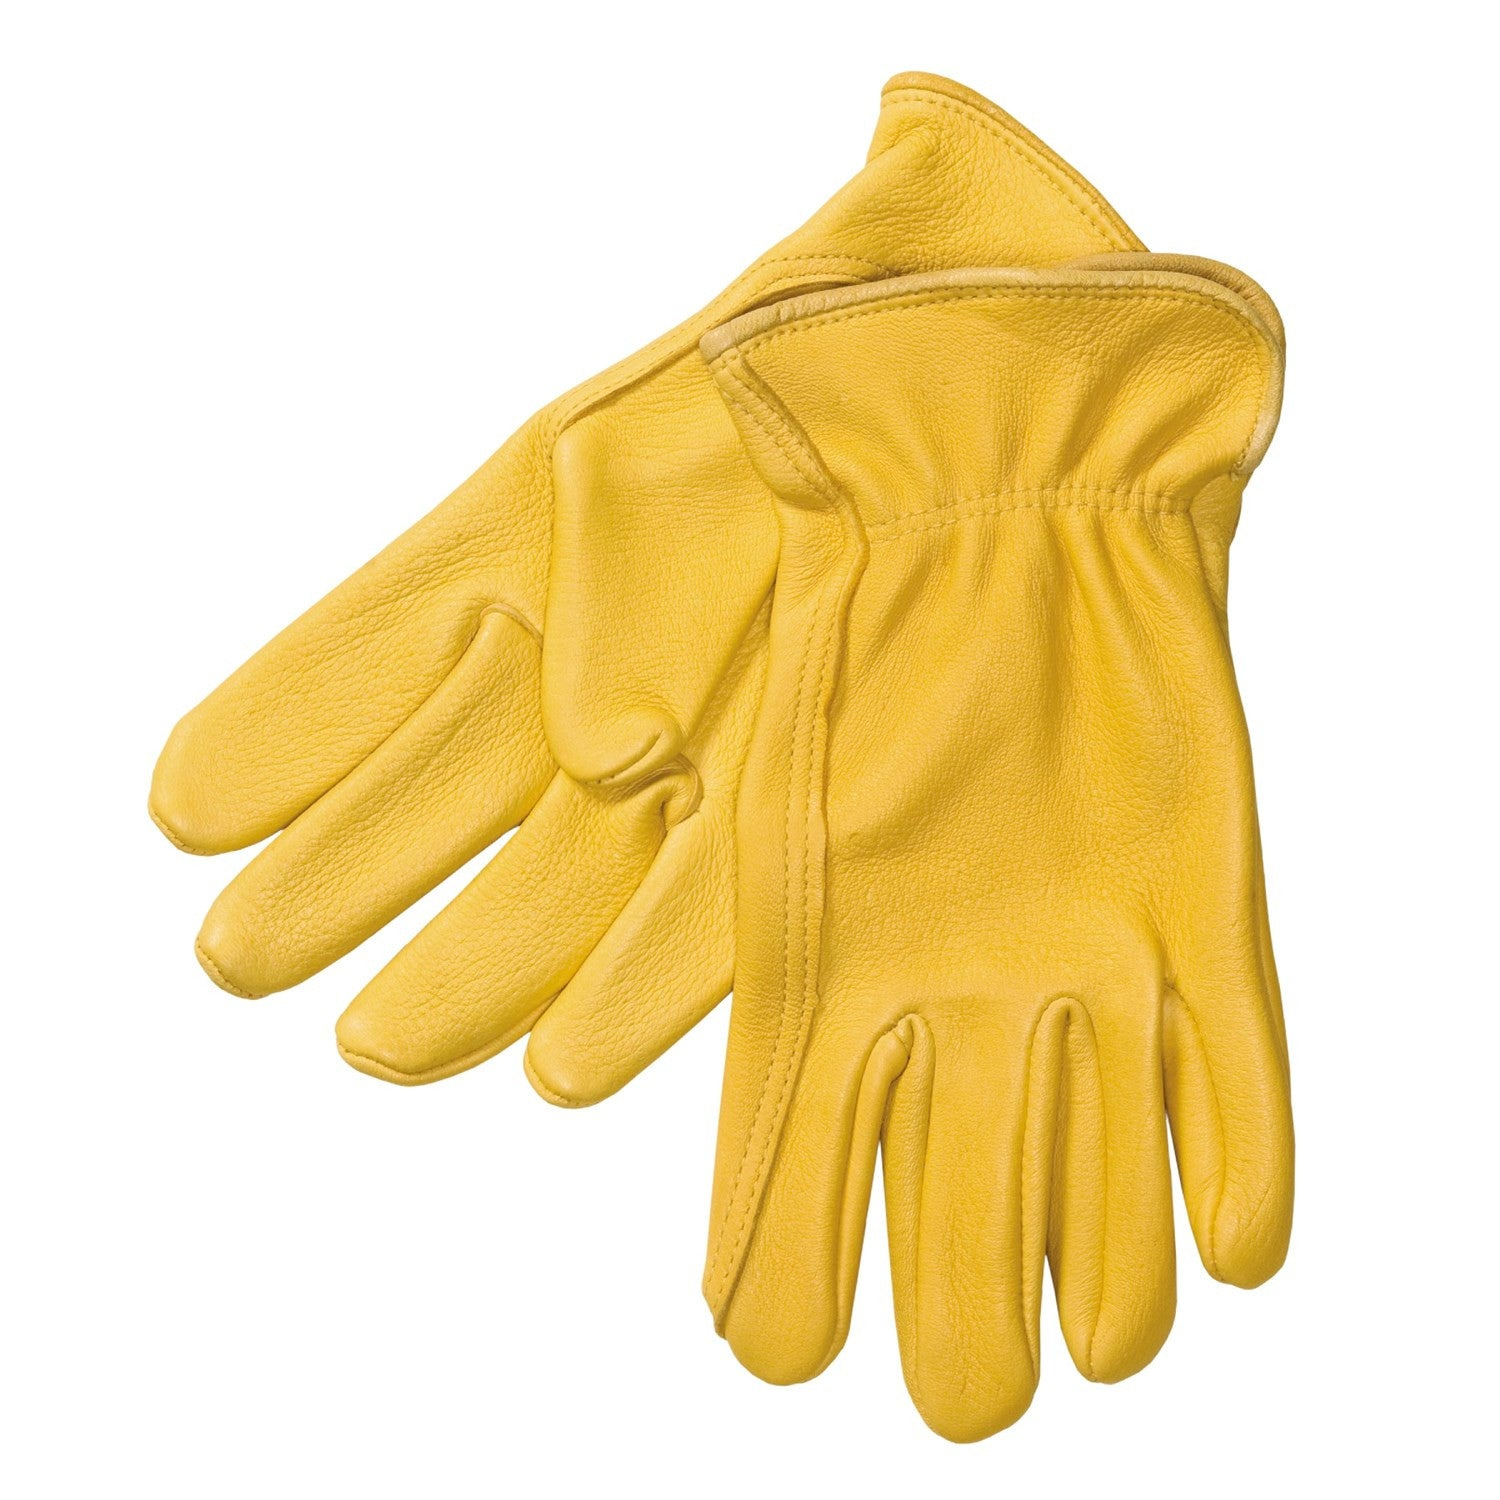 Leather work gloves made in the usa - Elk Skin Gloves